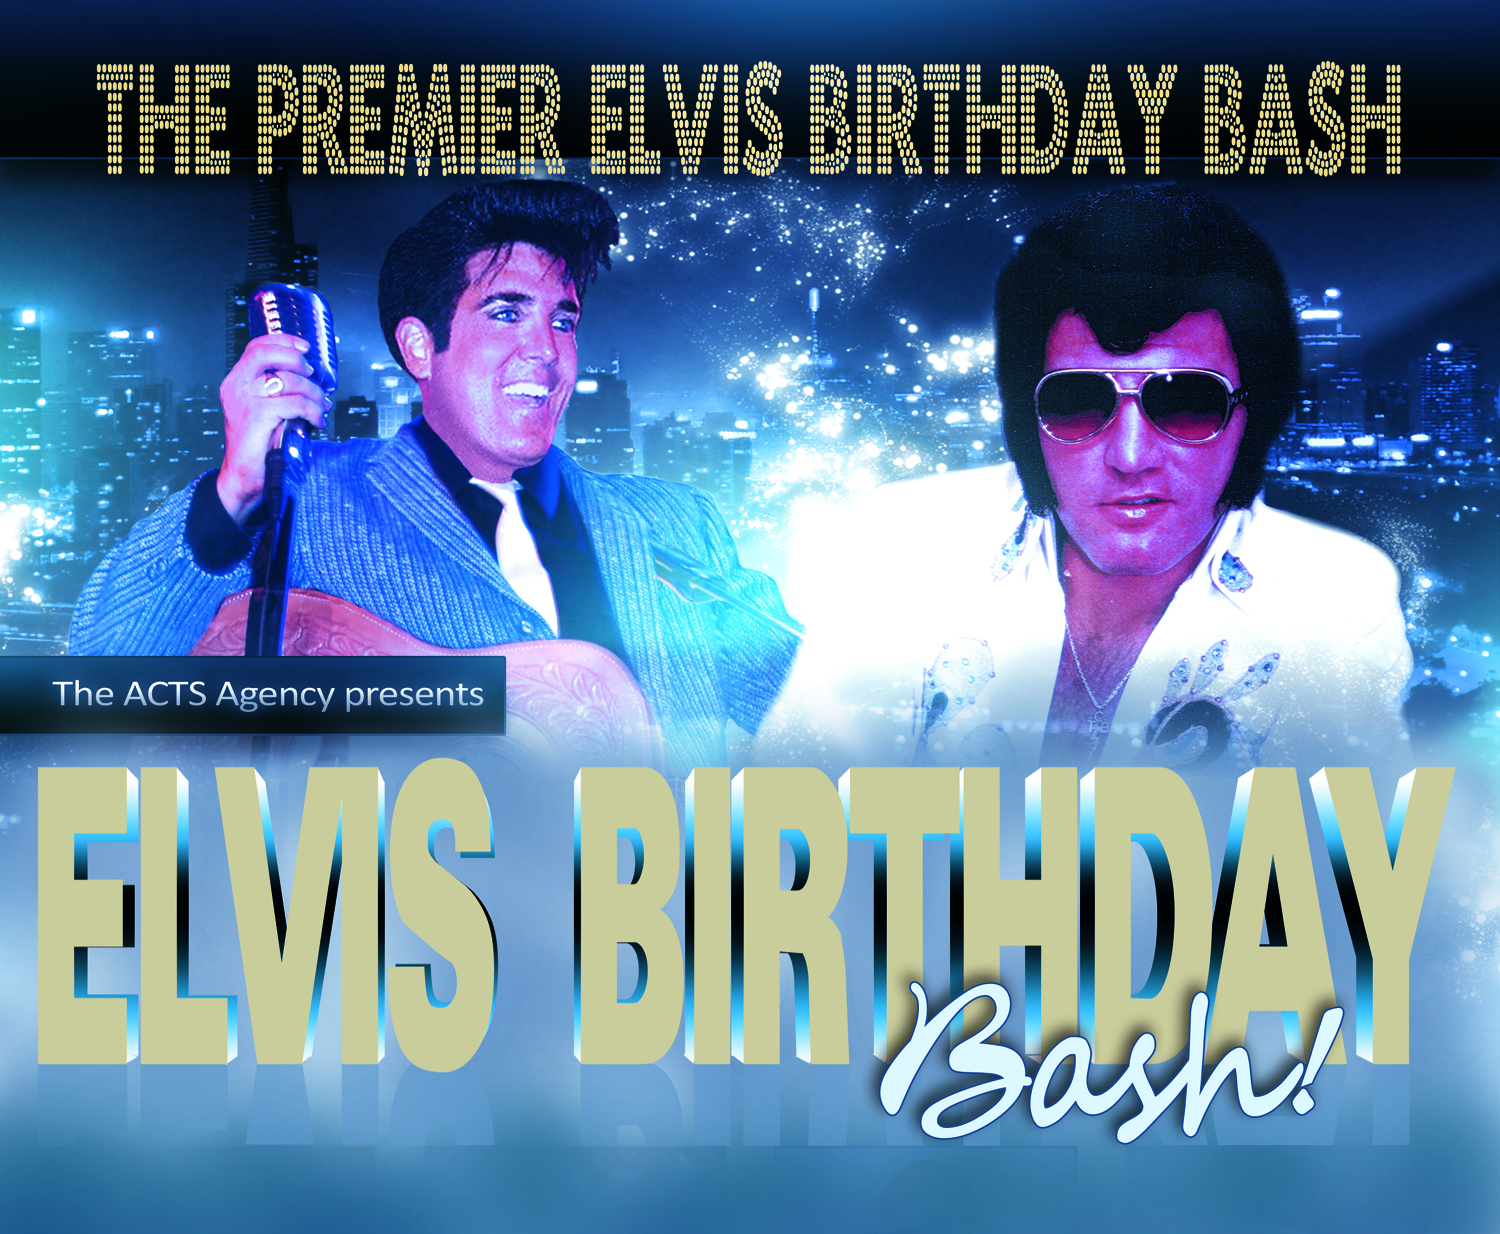 """The annual """"Elvis Birthday Bash"""" at the State Theatre in Easton has been rescheduled for April 23.  (Courtesy Image)"""